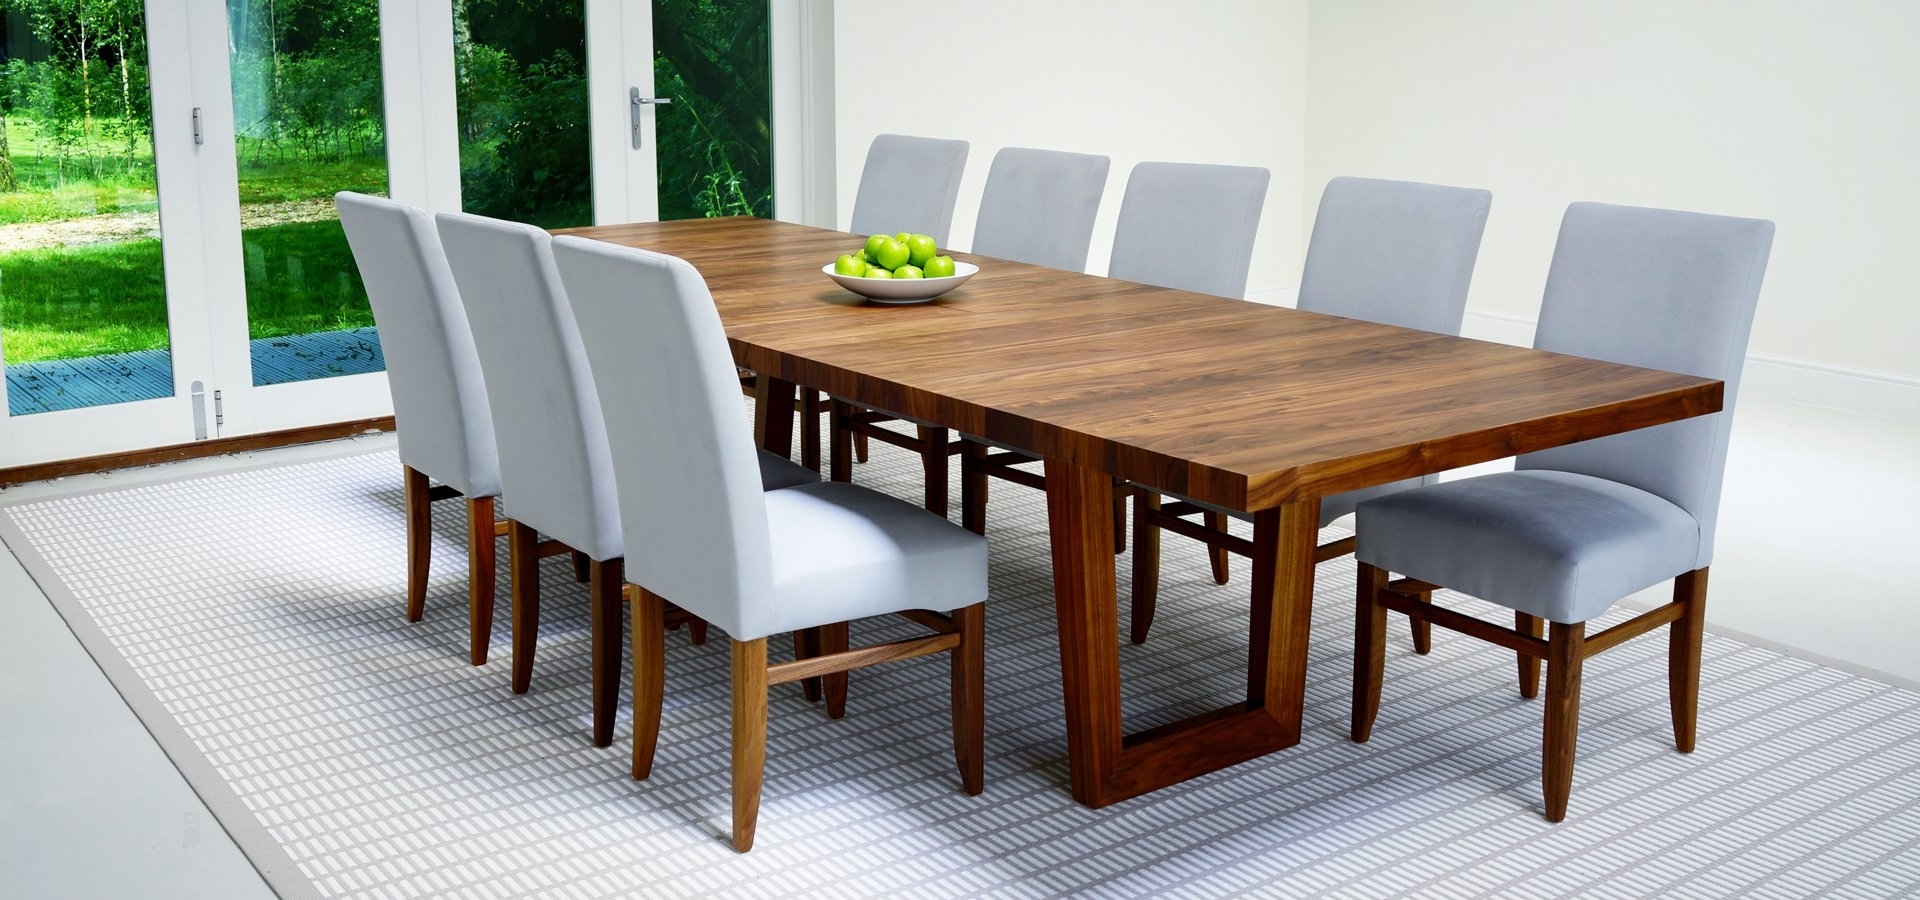 Famous Extendable Dining Tables Sets Inside Modern Extendable Dining Table Set – Castrophotos (View 9 of 25)